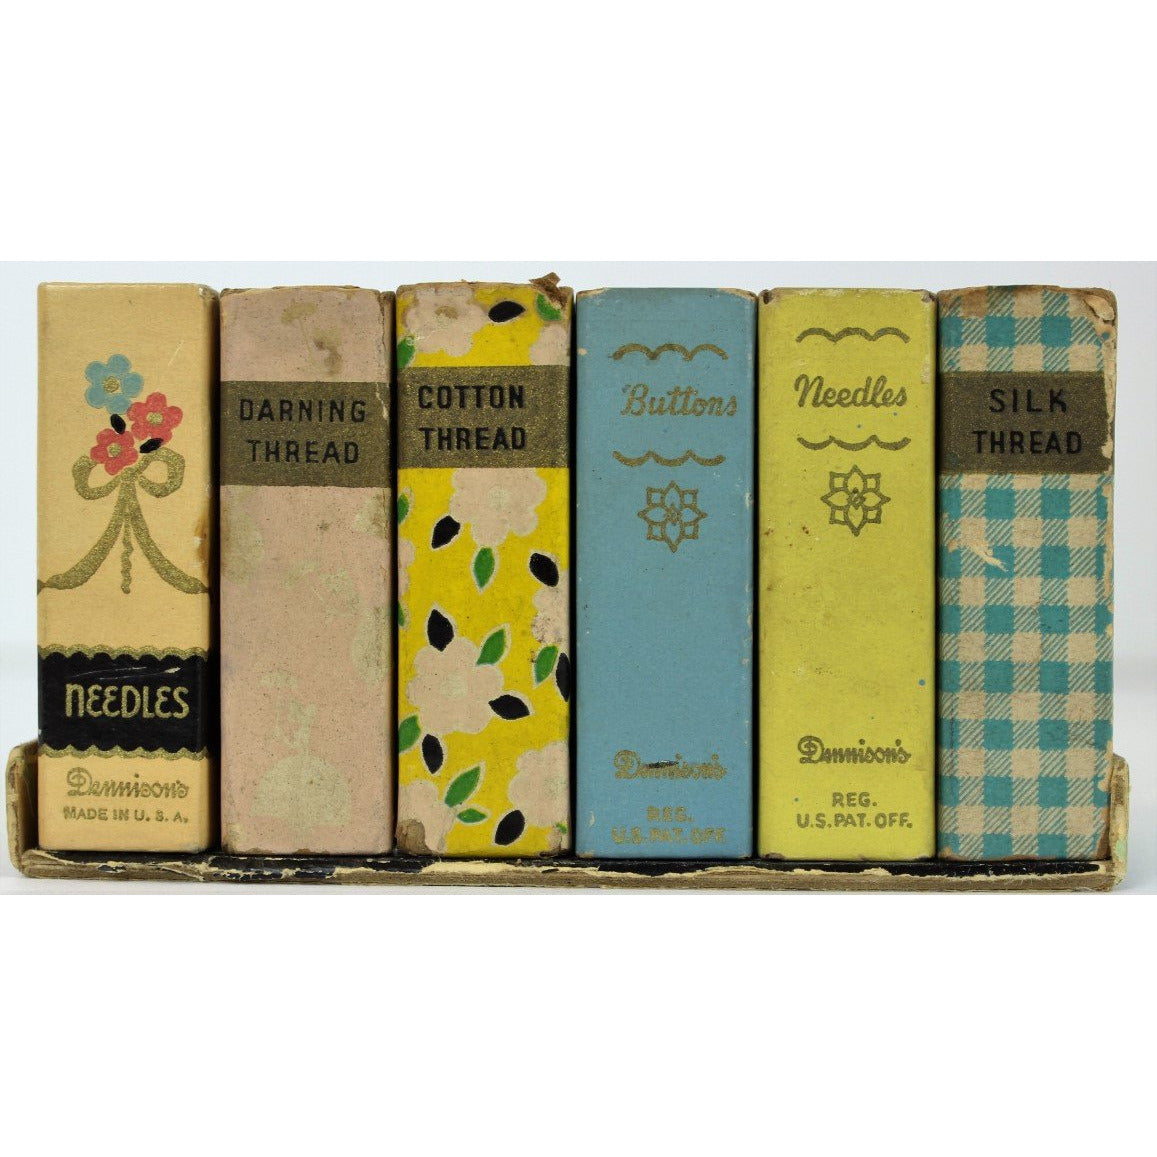 Boxed Set of 6 Miniature Faux Books w/ Sewing Materials